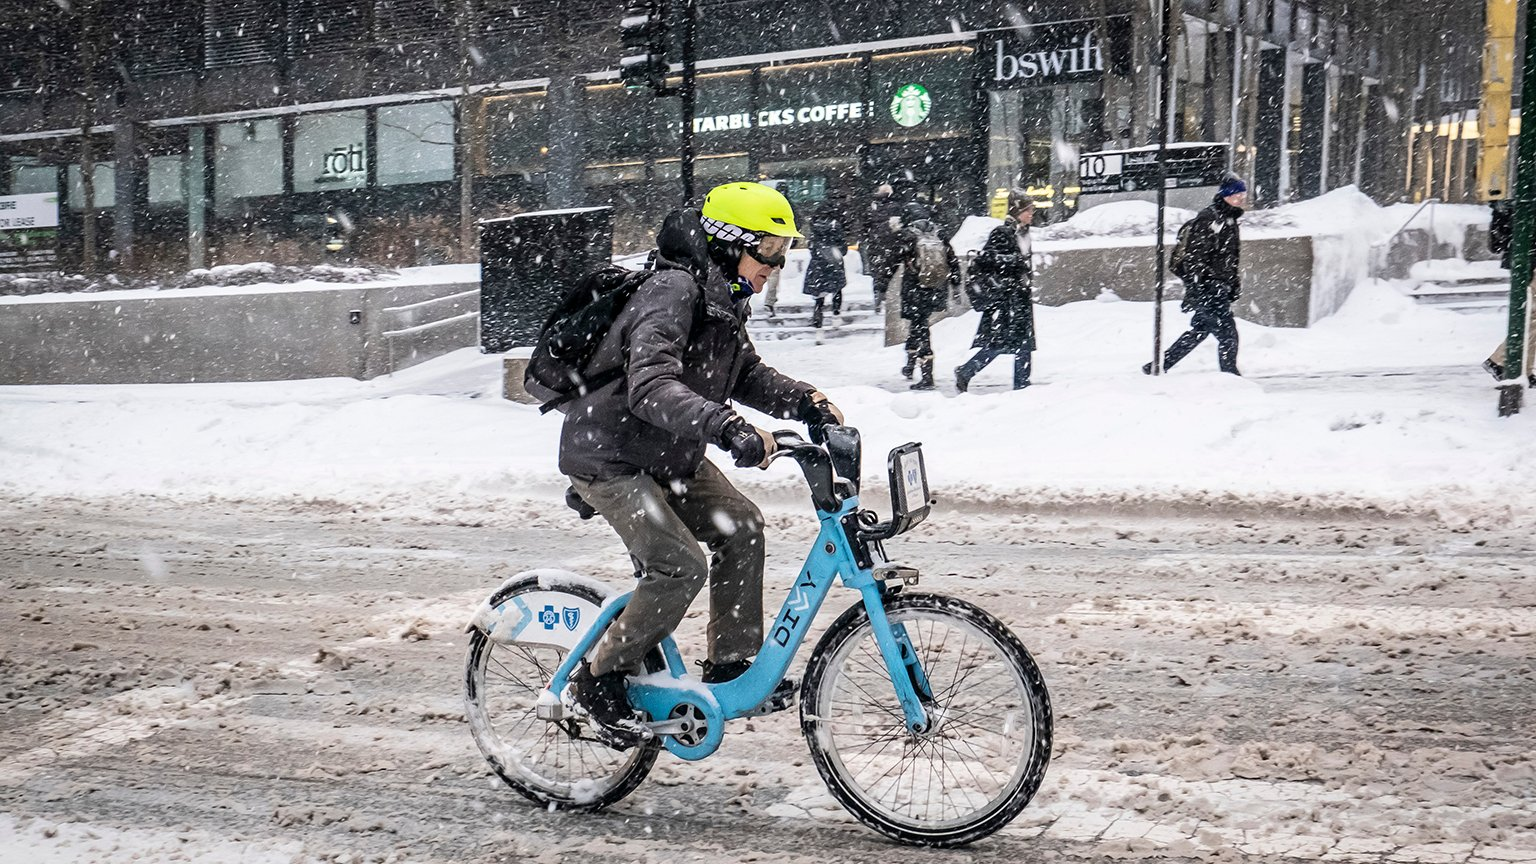 A person navigates a snowy Adams Street on a Divvy bicycle on Monday, Jan. 28, 2019. (Rich Hein / Chicago Sun-Times via AP)